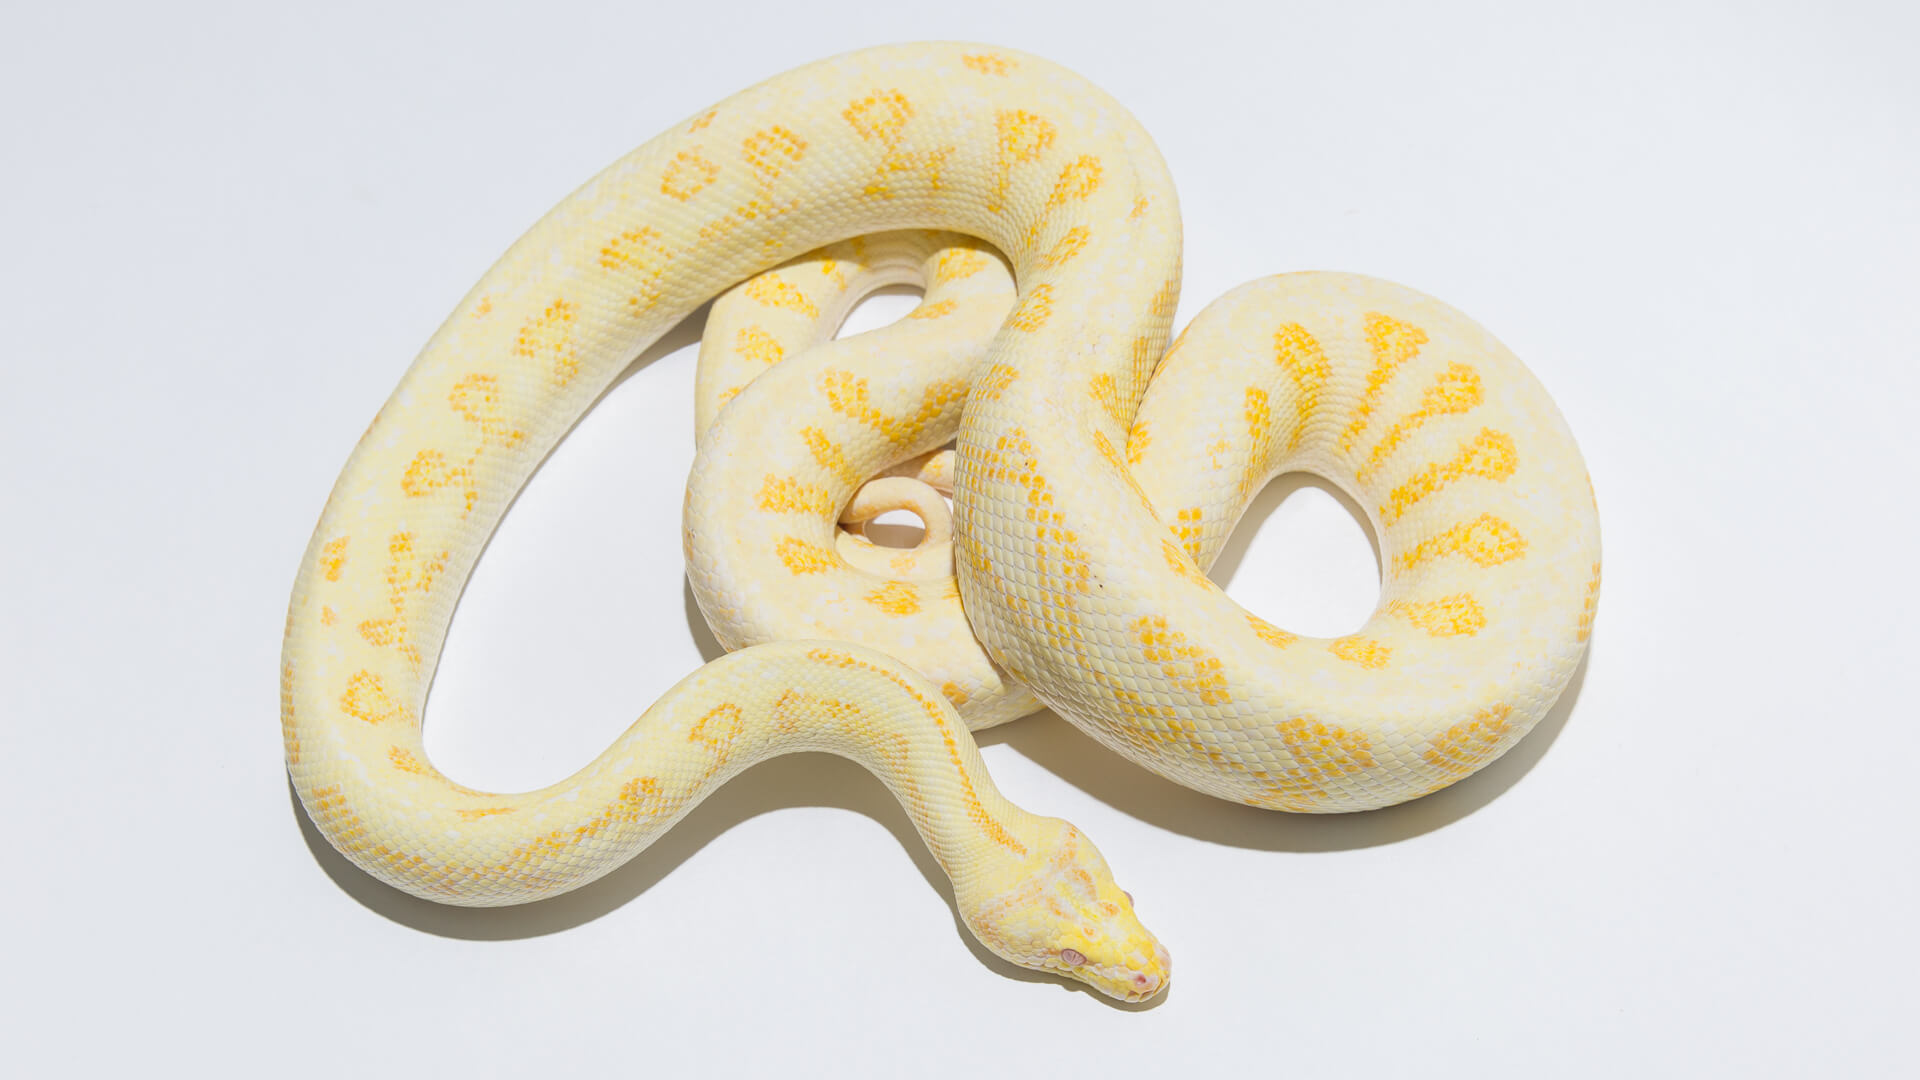 Albino Carpet Pythons